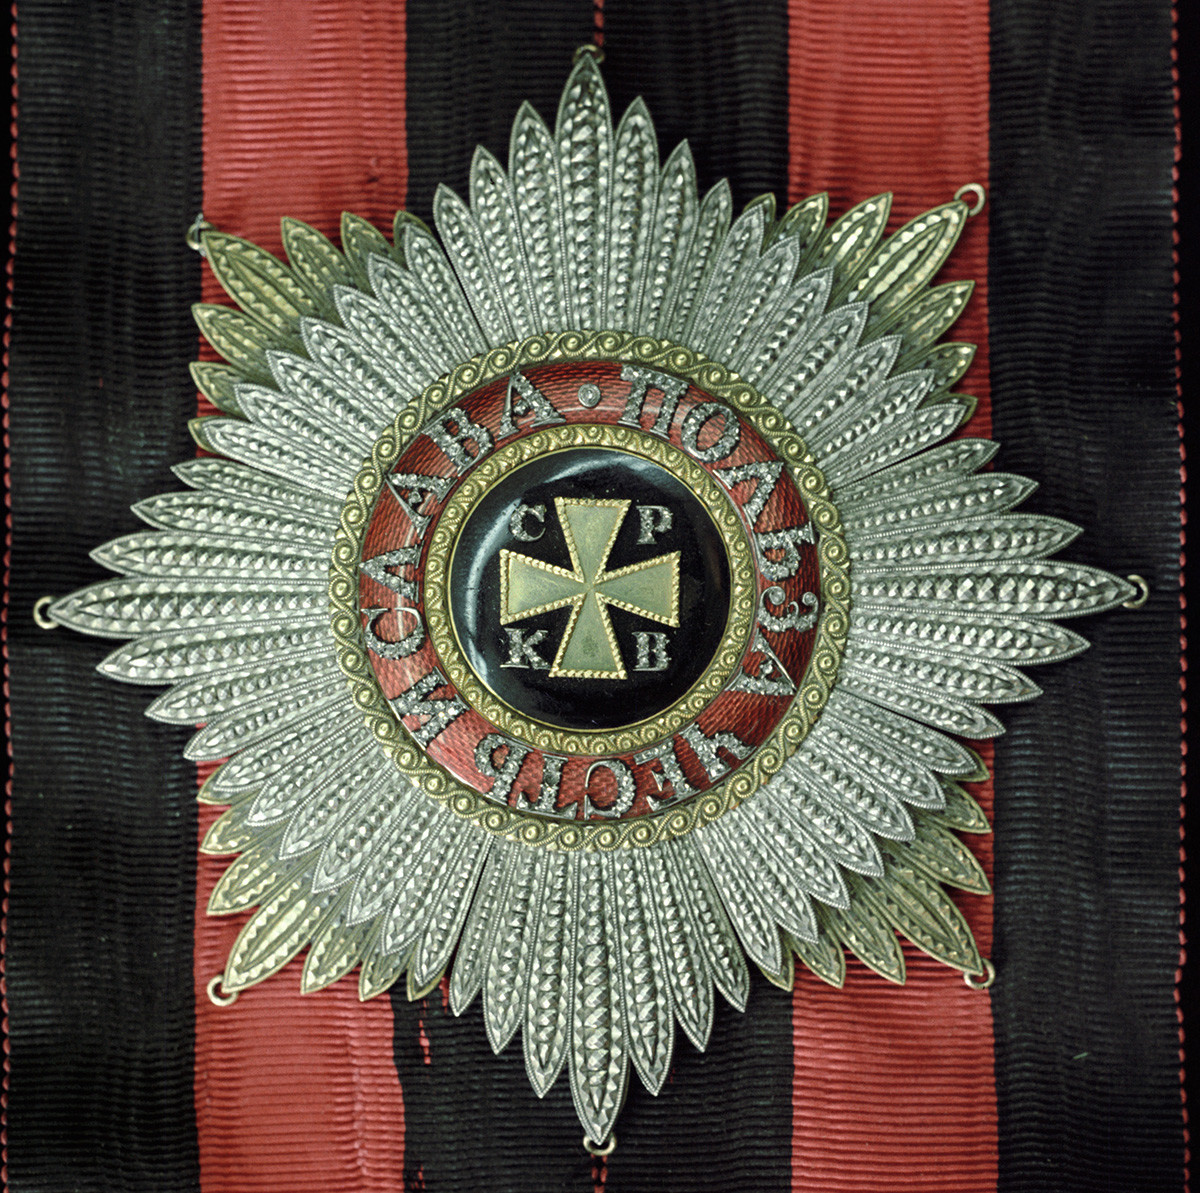 The Star of the Order of Saint Vladimir, 1st class.